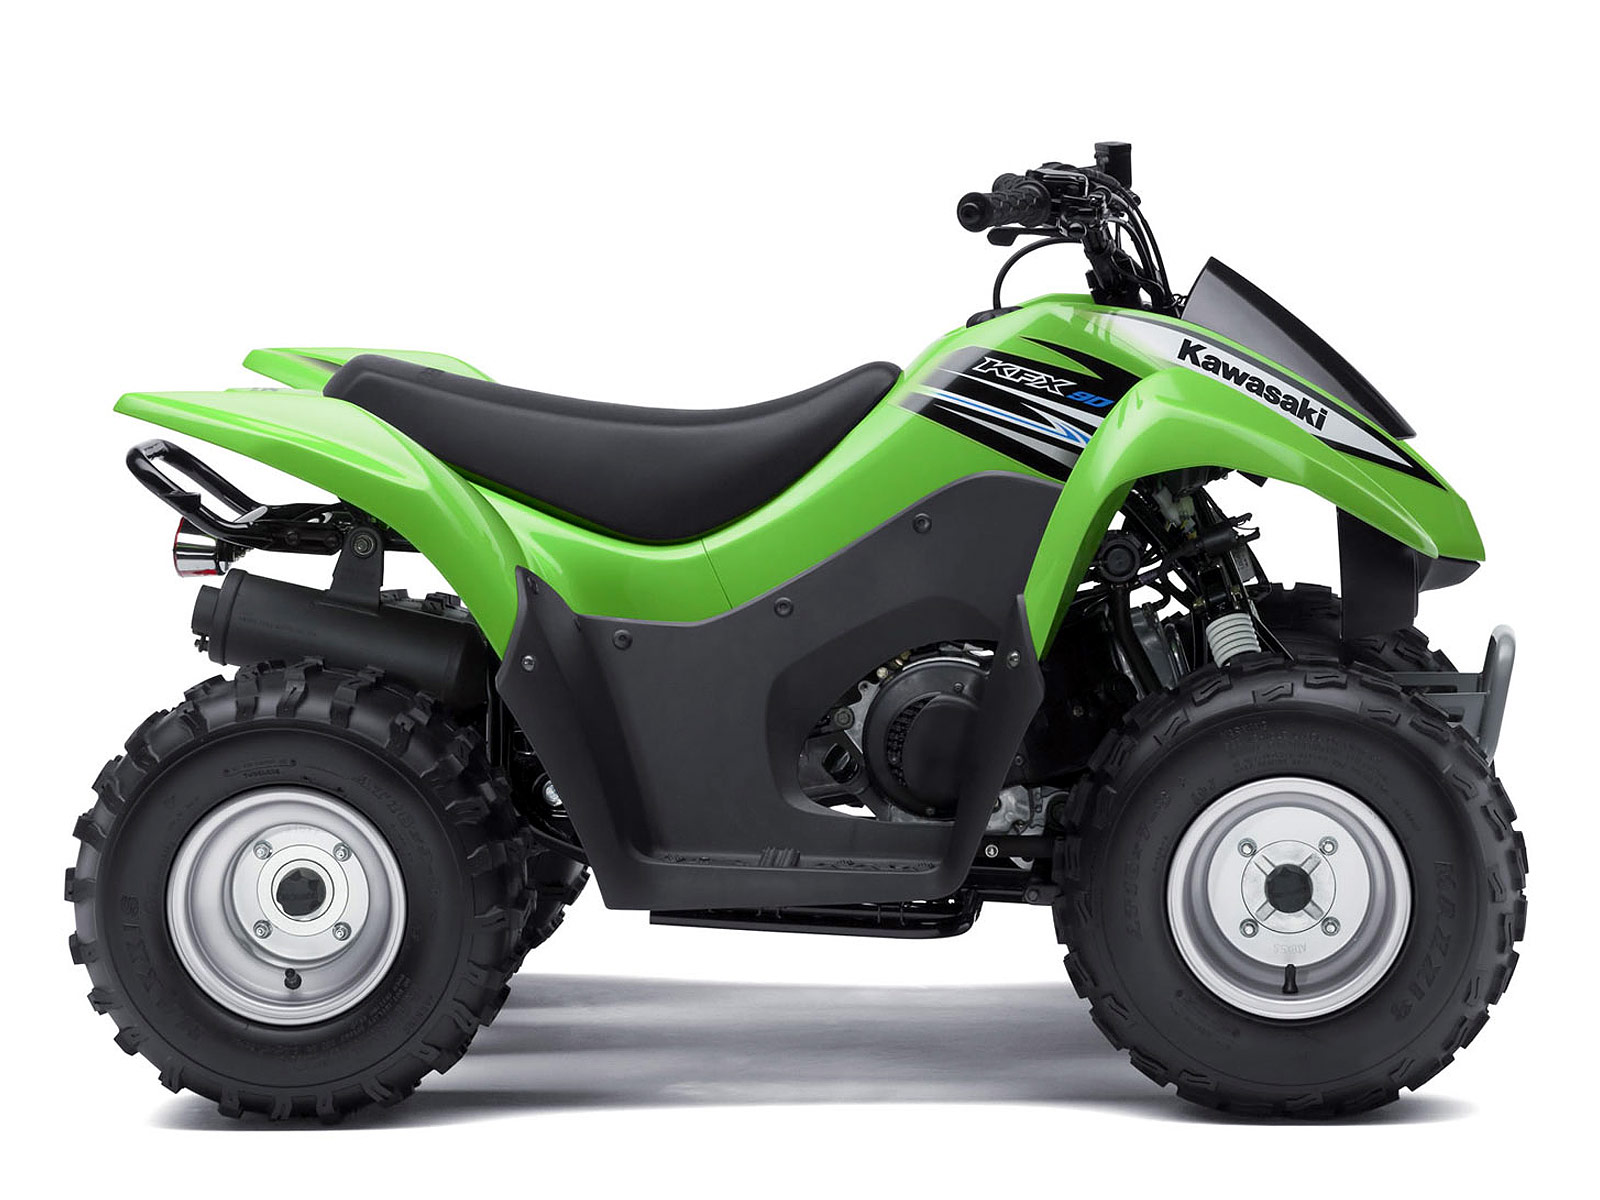 2011 kawasaki kfx 90 features specifictions and pictures super heavy bikes. Black Bedroom Furniture Sets. Home Design Ideas